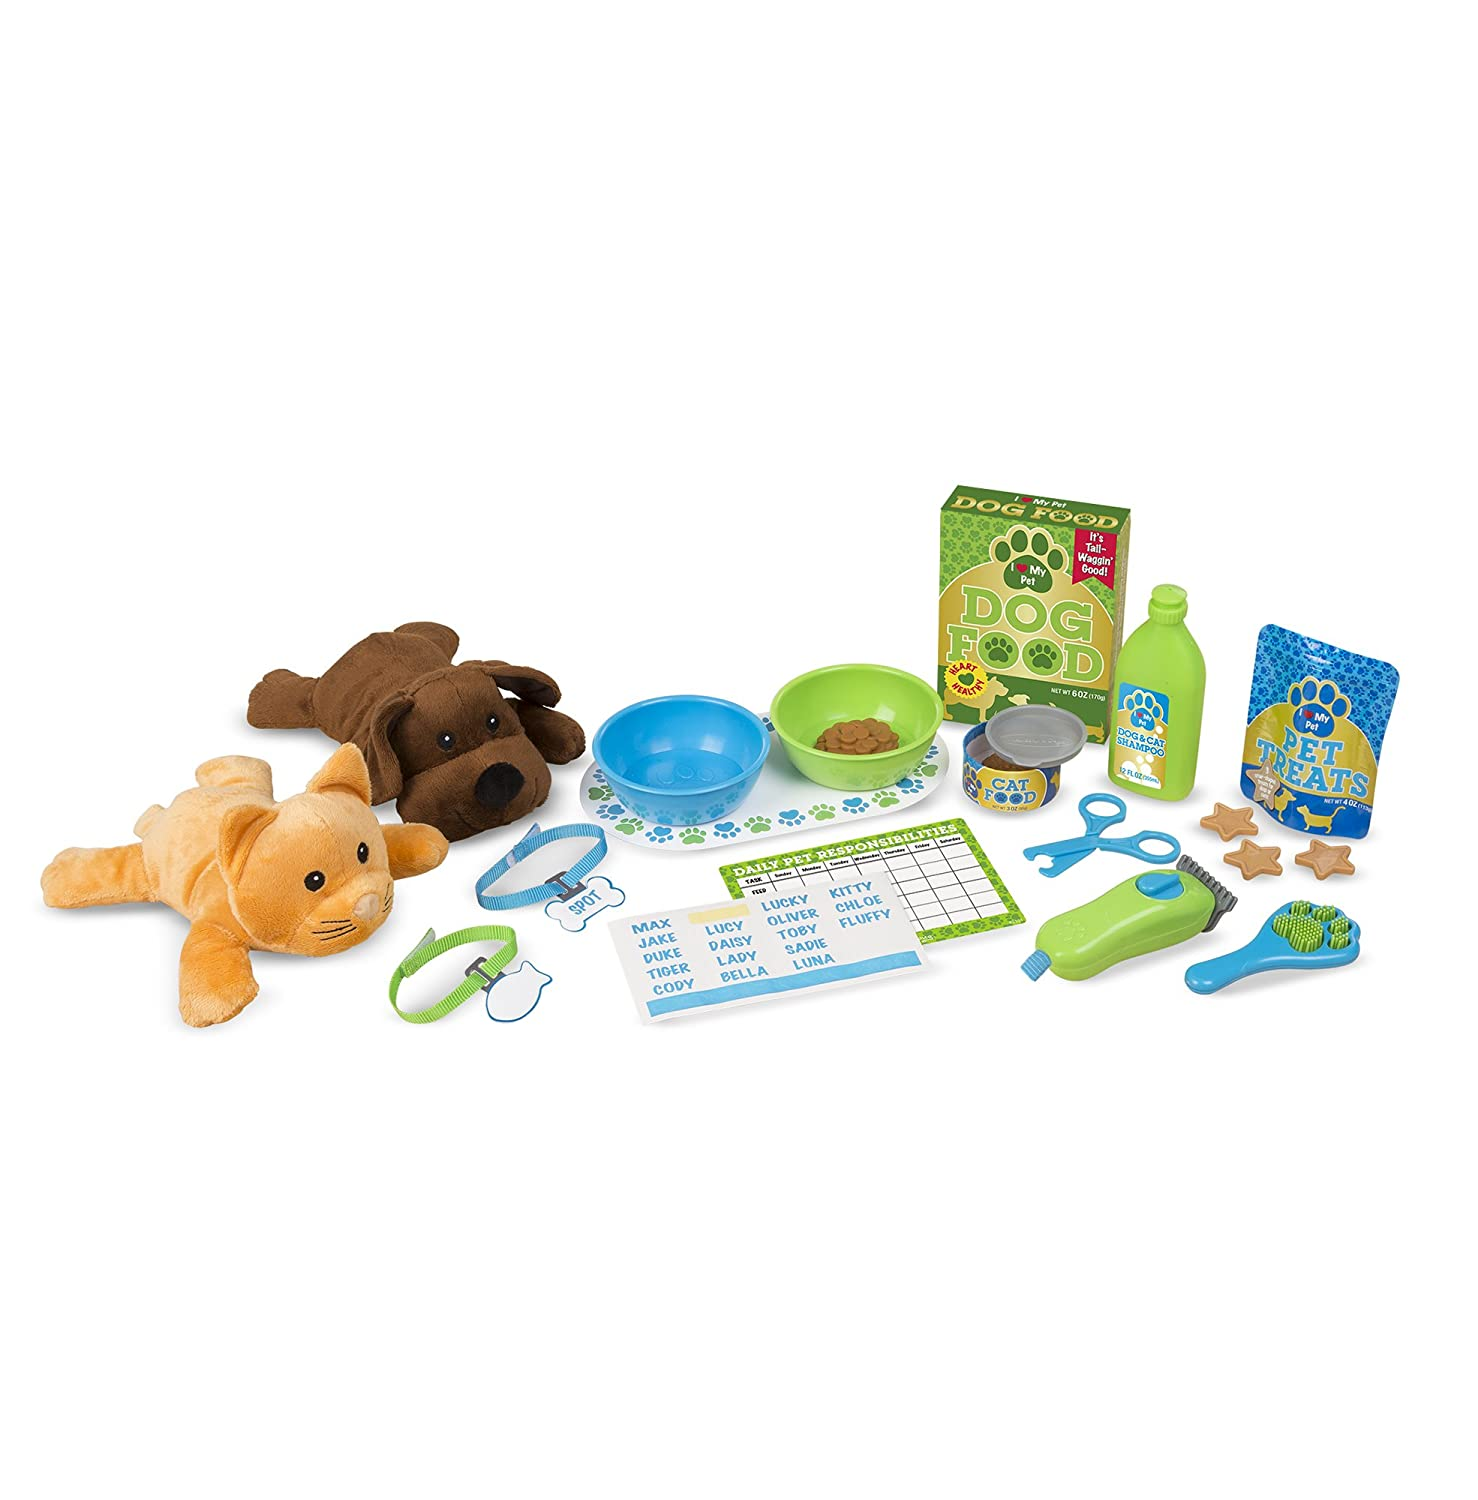 Melissa & Doug 18551 Feeding & Grooming Pet Care Play Set with 2 Plush Animals, 24 Pieces Melissa and Doug